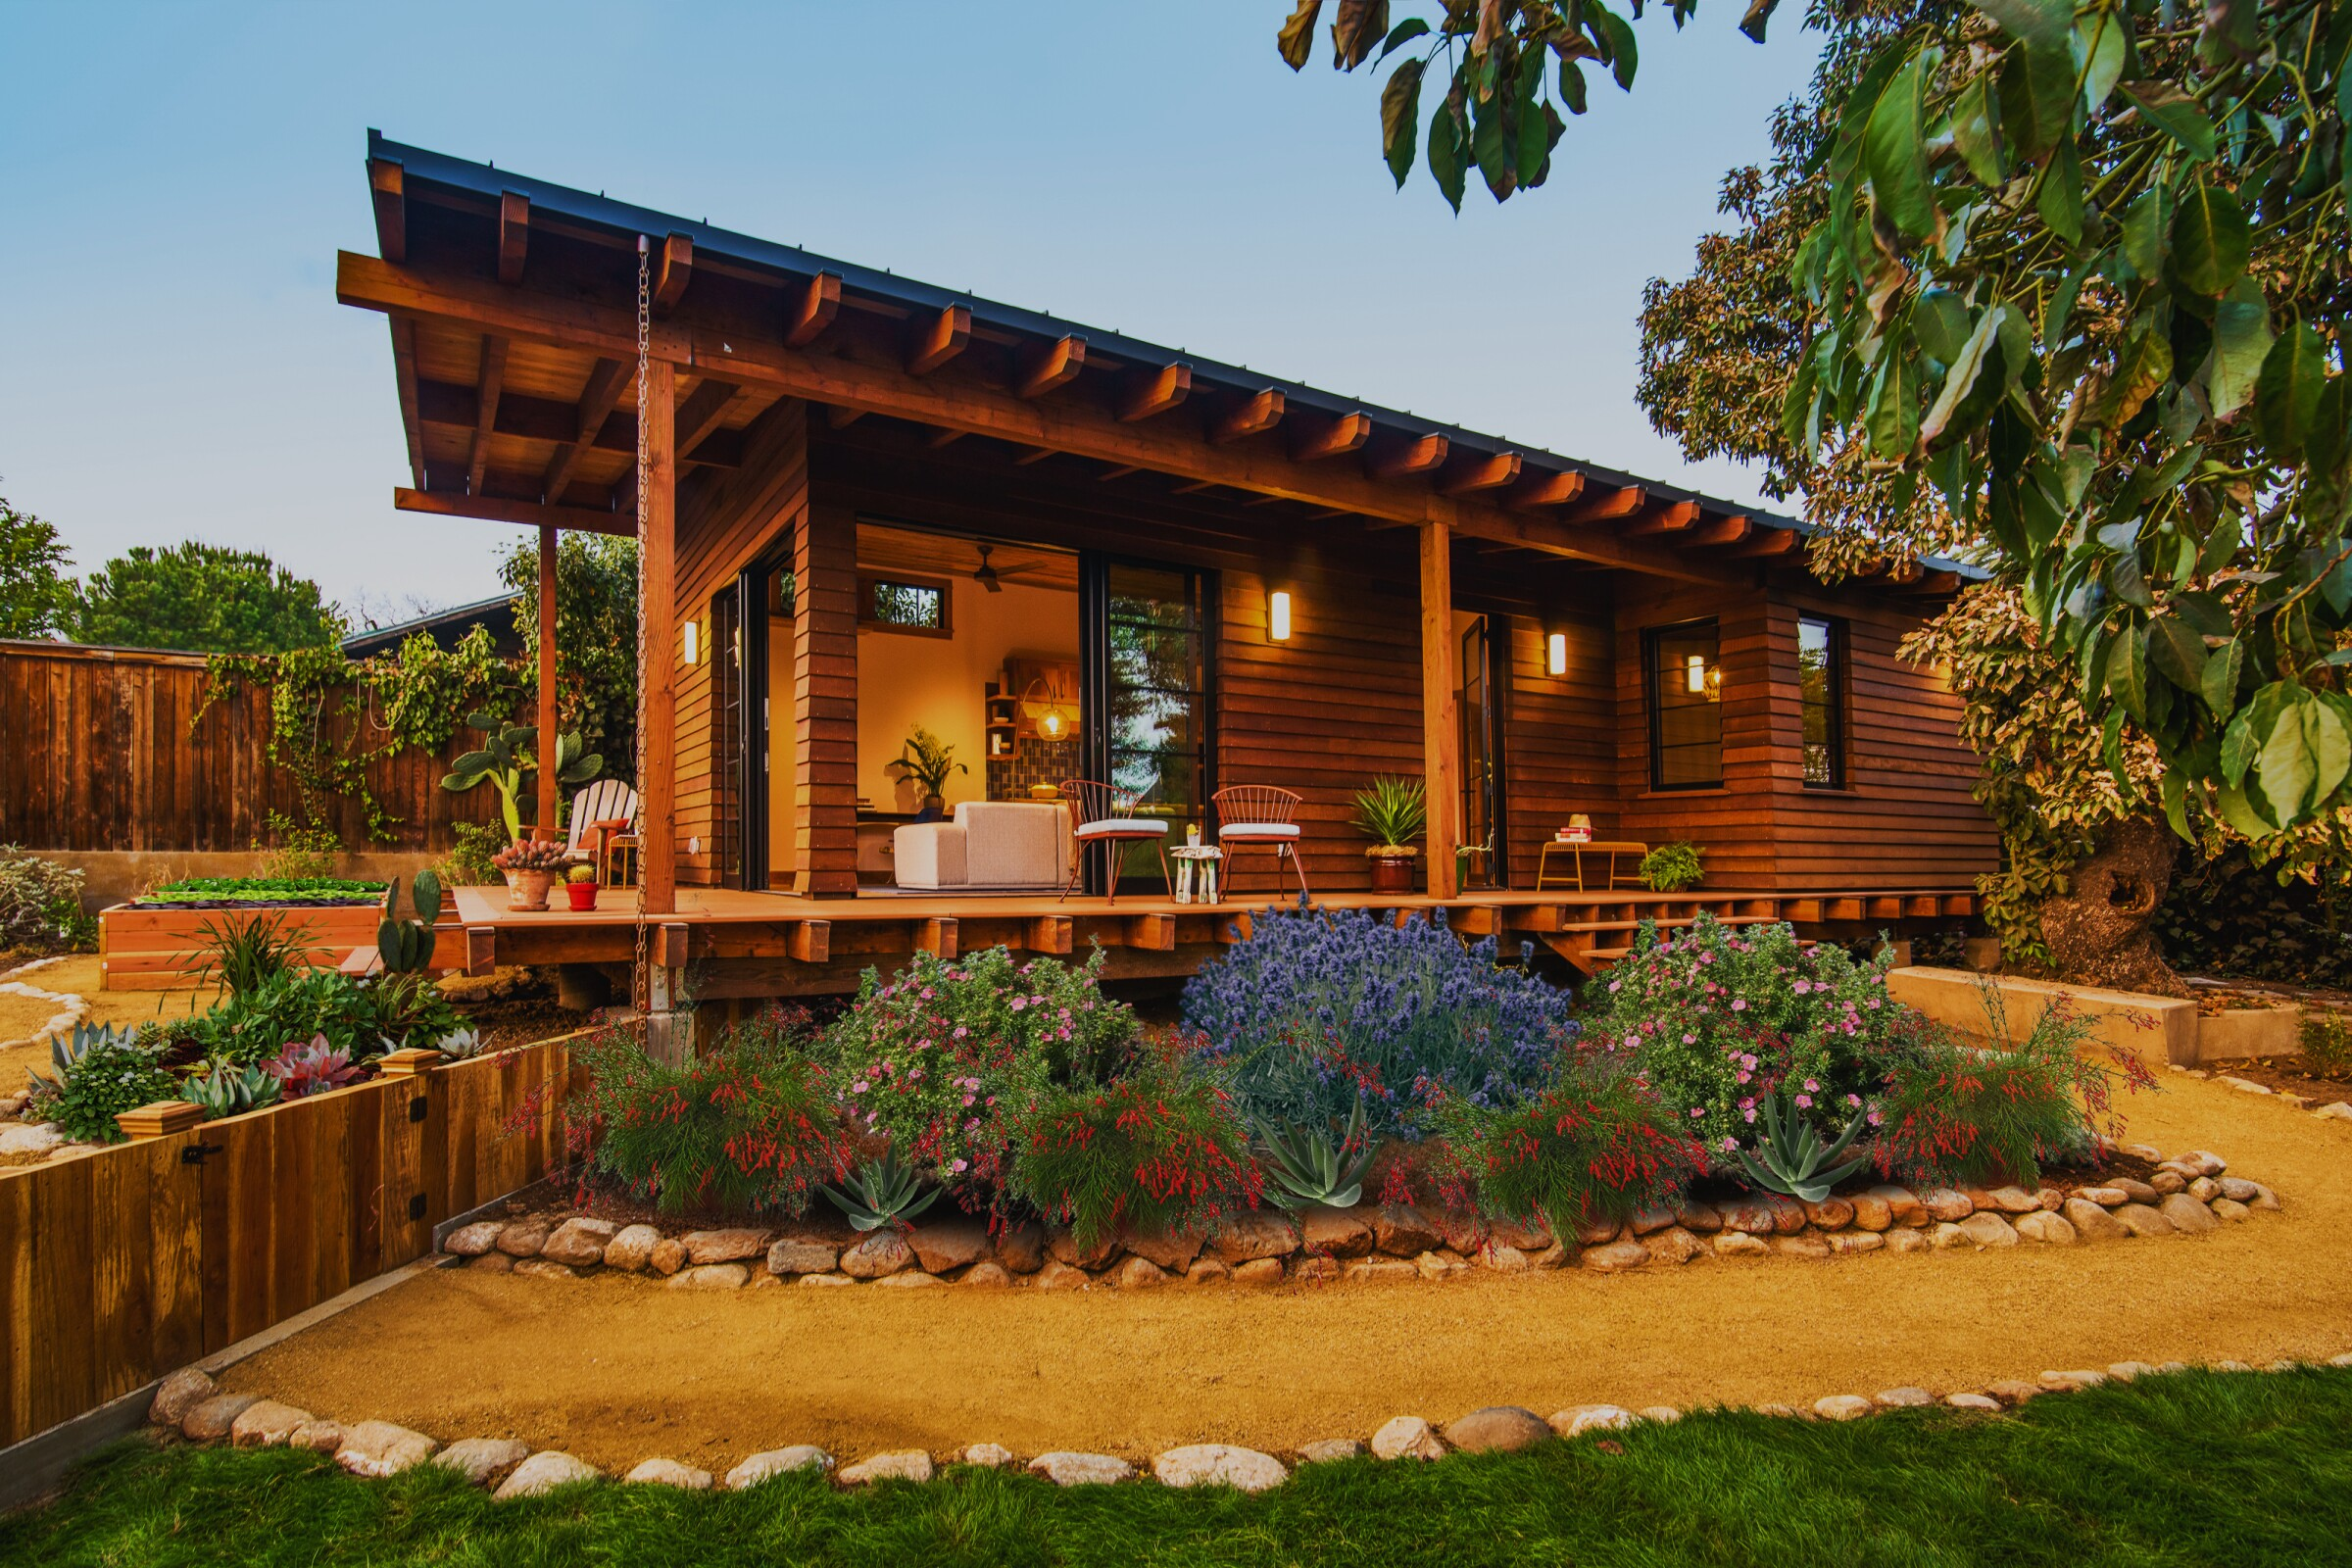 An exterior shot of a quaint 'granny flat' with redwood siding and a wraparound deck